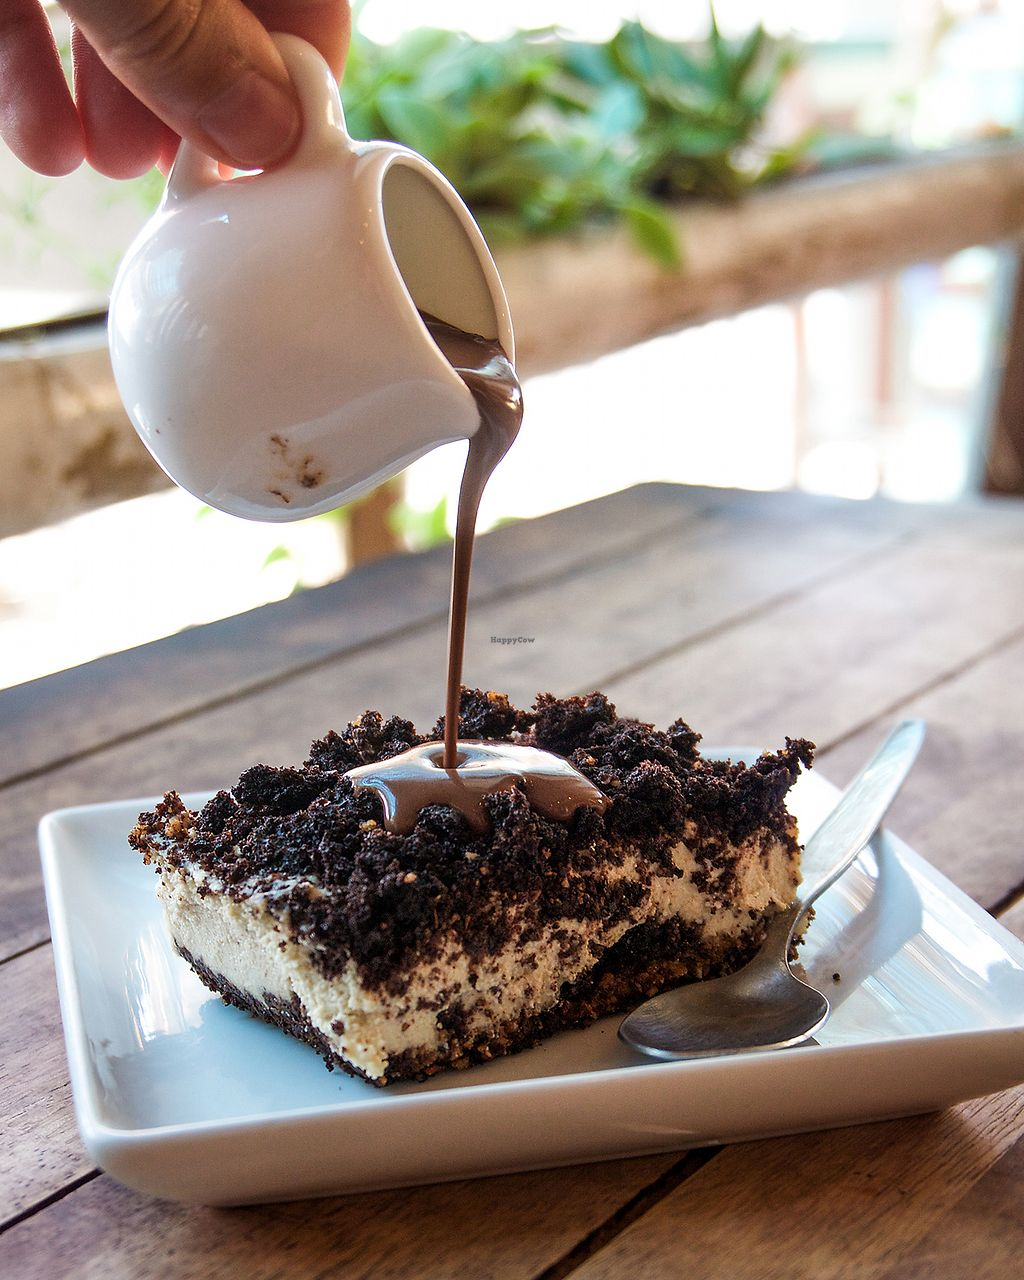 "Photo of Eat Co  by <a href=""/members/profile/KirstenK"">KirstenK</a> <br/>Oreo Coffee Cheesecake (with chocolate sauce) <br/> December 16, 2017  - <a href='/contact/abuse/image/53484/336053'>Report</a>"